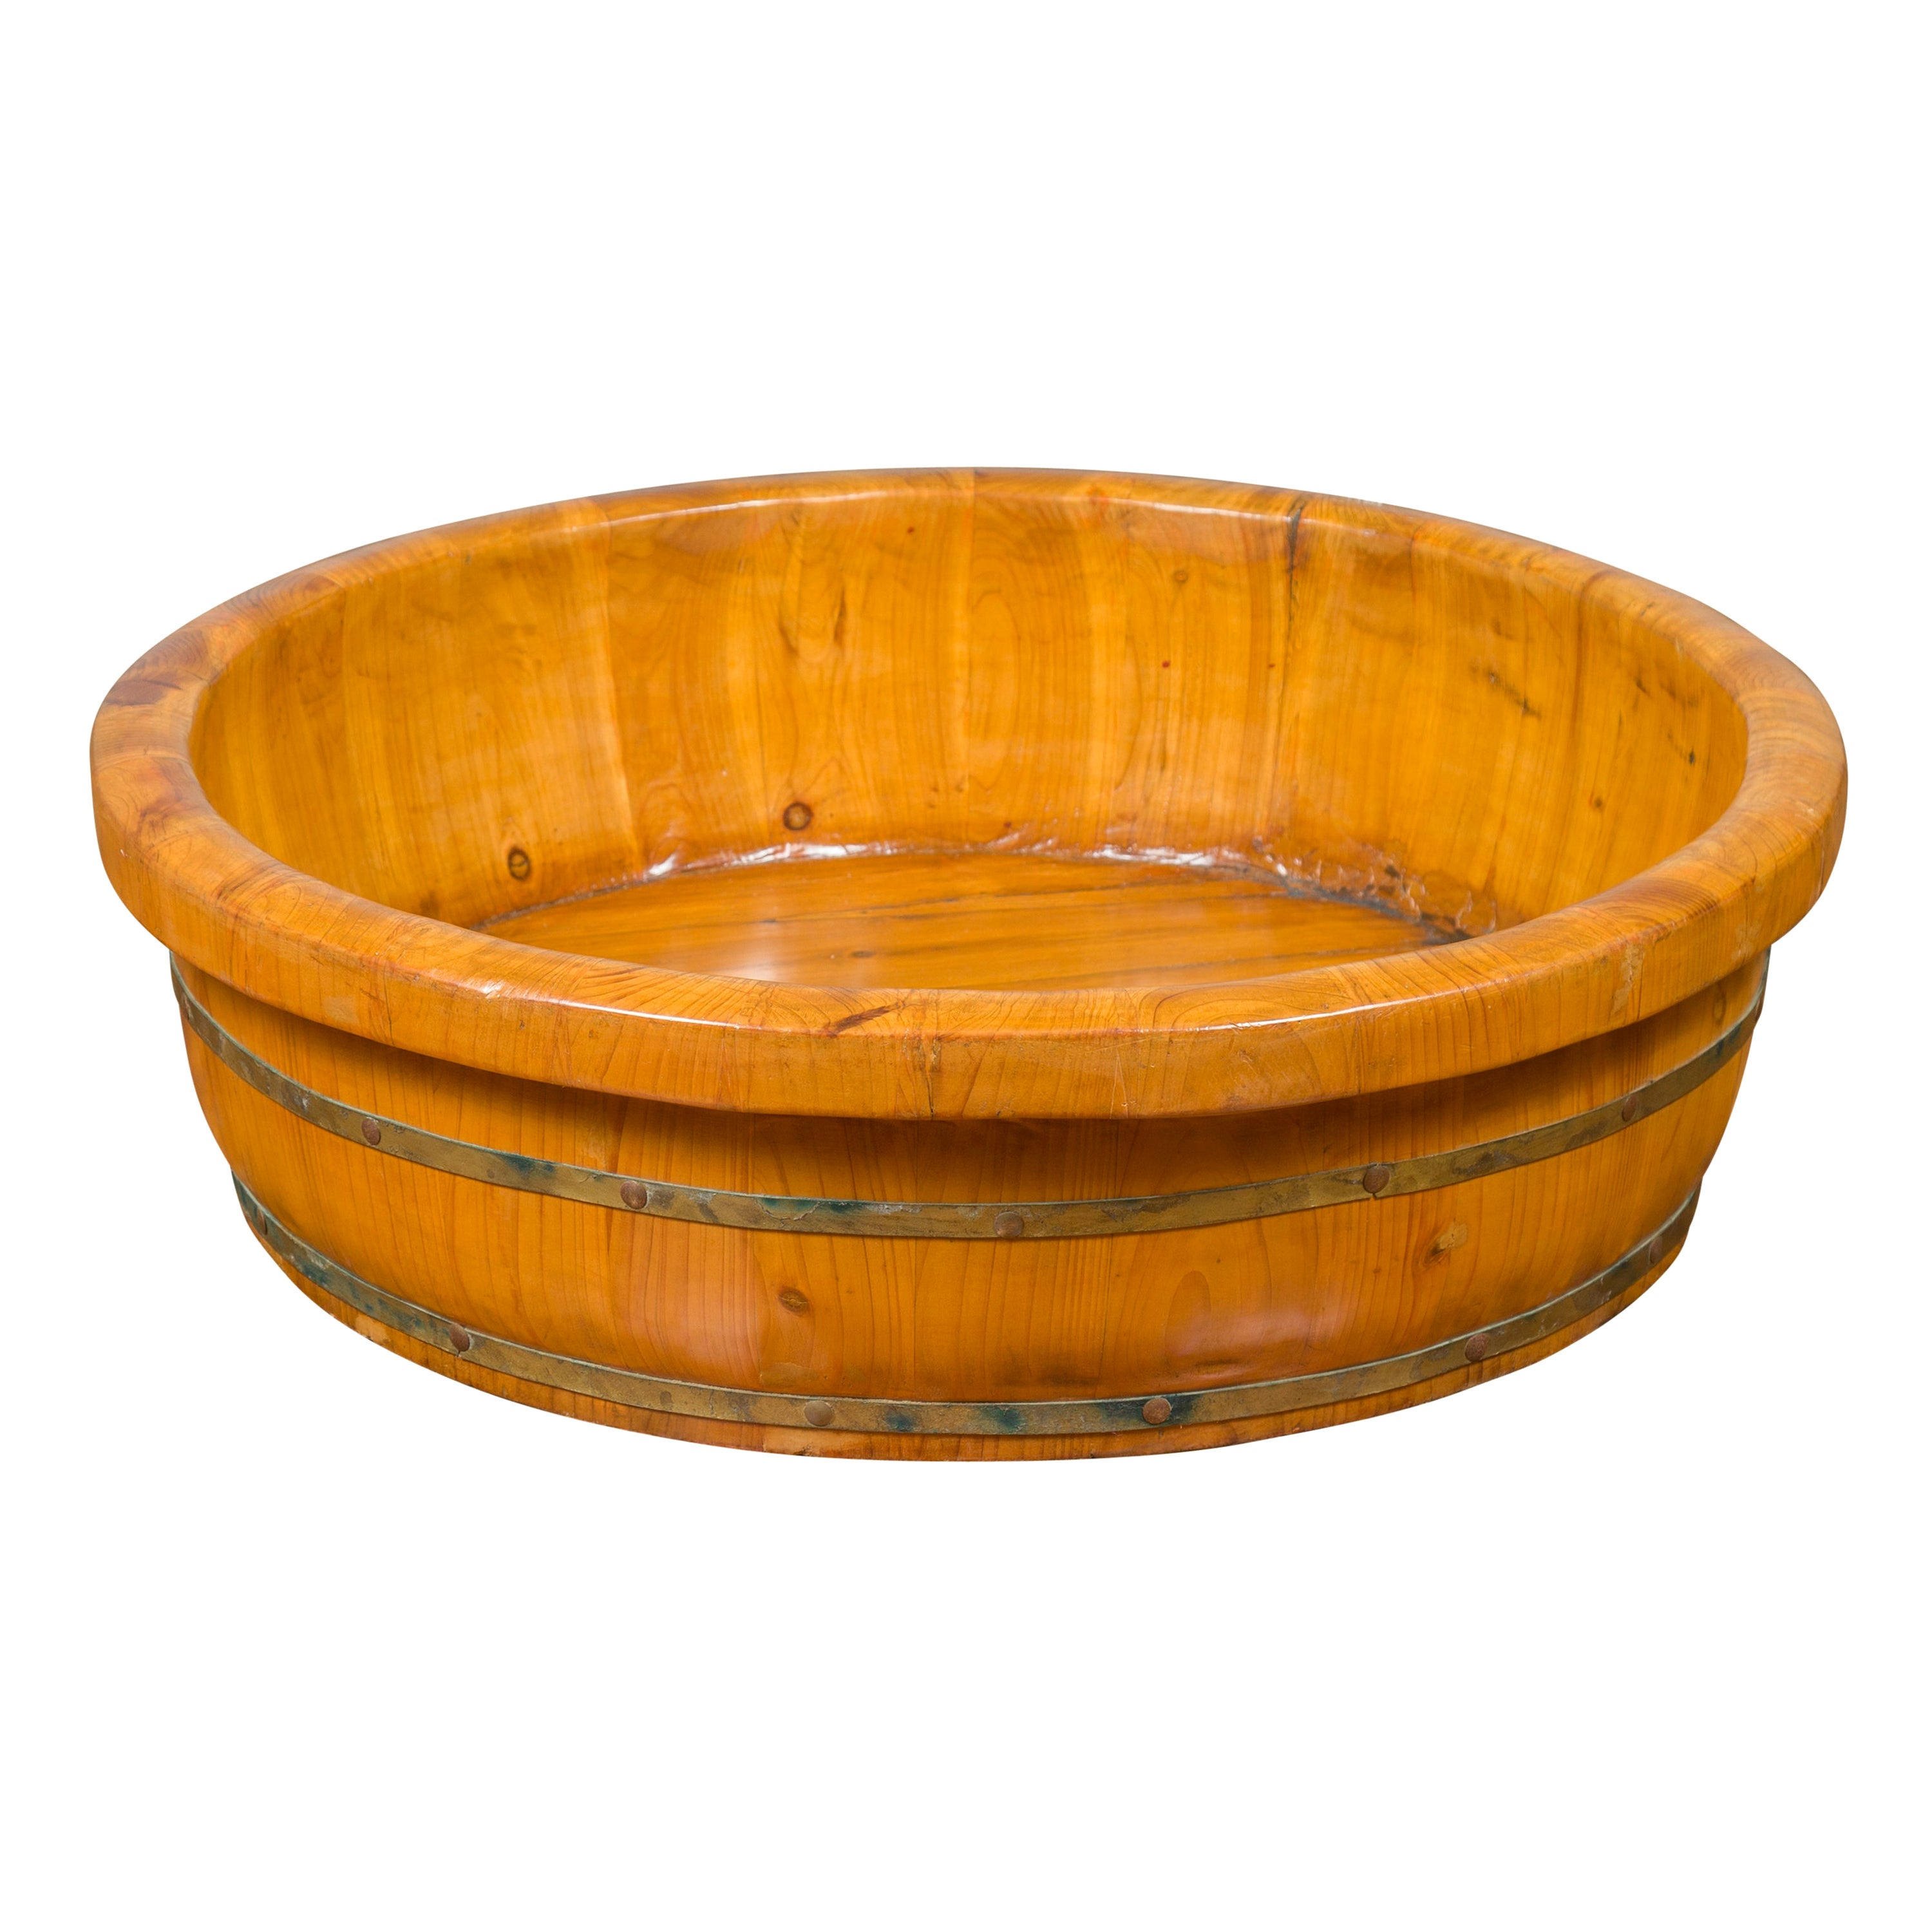 Chinese Qing Dynasty Period 19th Century Elm Round Rice Tray with Brass Braces